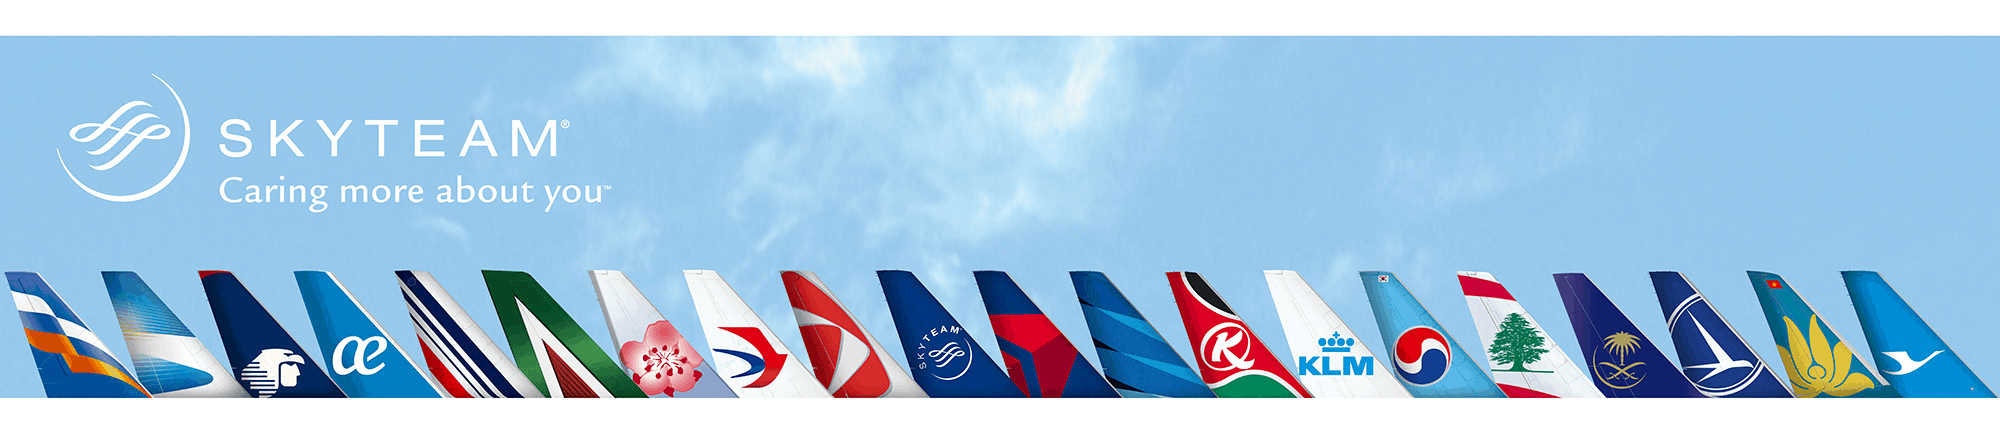 Check out our airline alliance